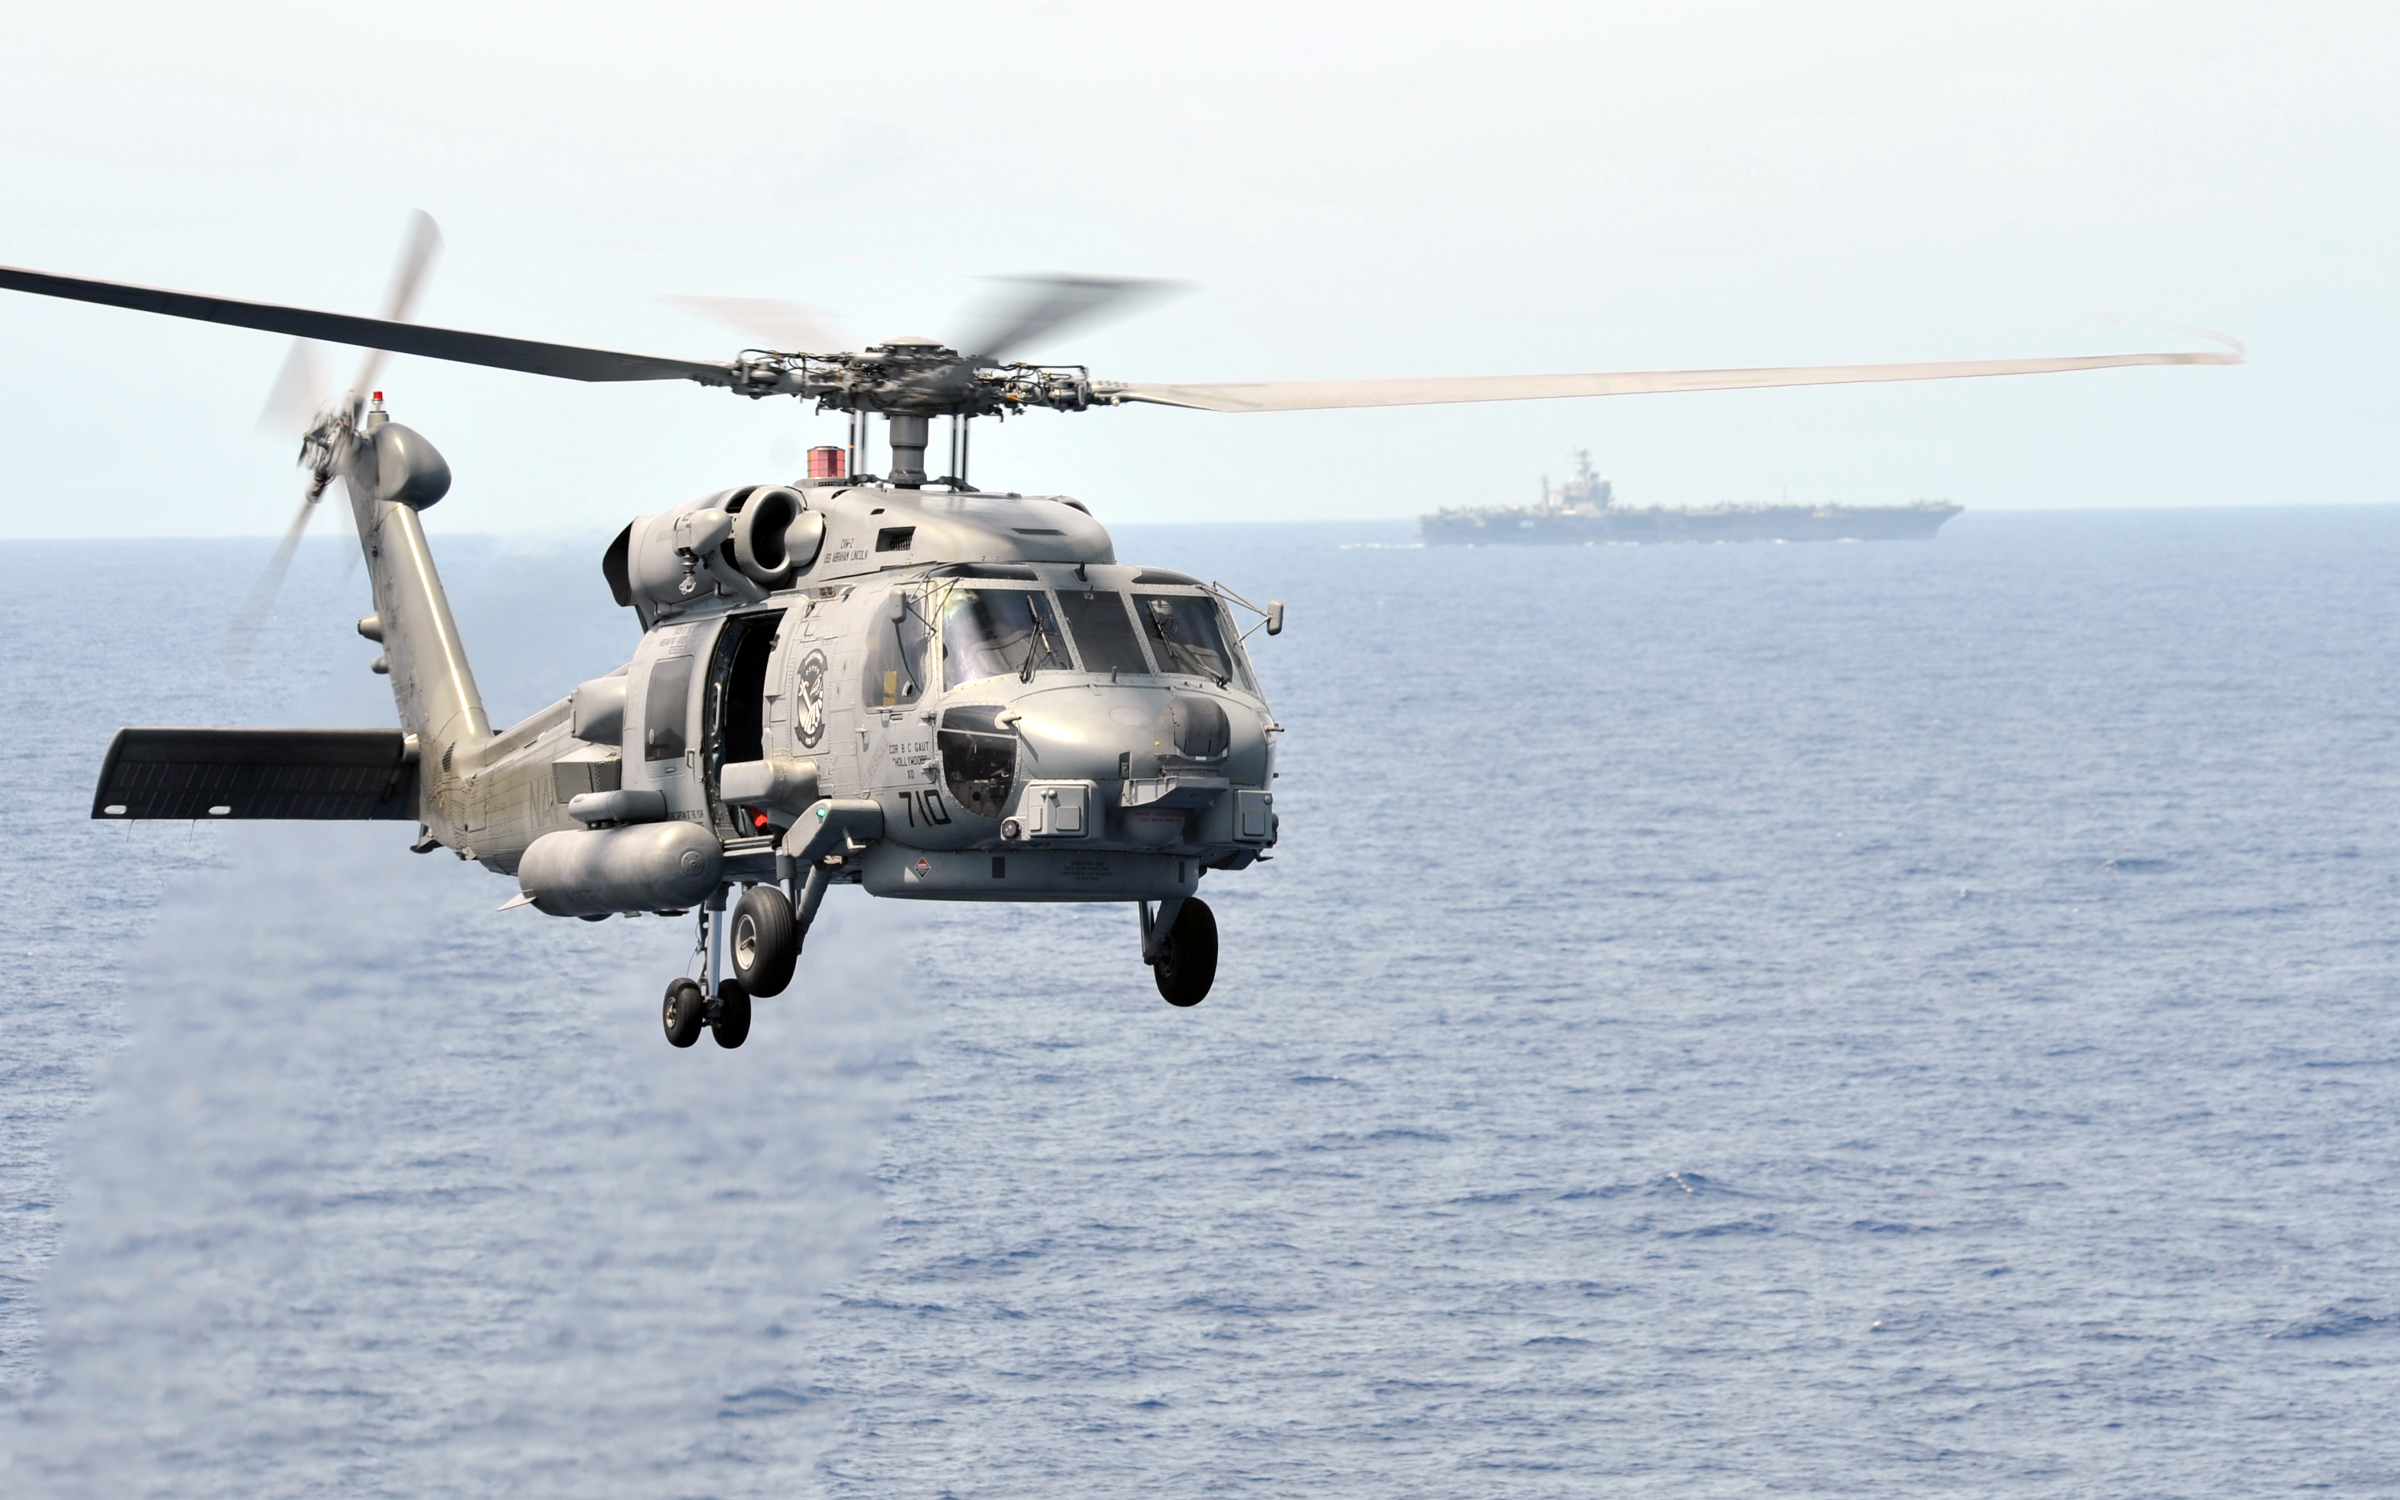 US Navy 110309-N-PM781-193 An MH-60R Sea Hawk helicopter participates in an air power demonstration